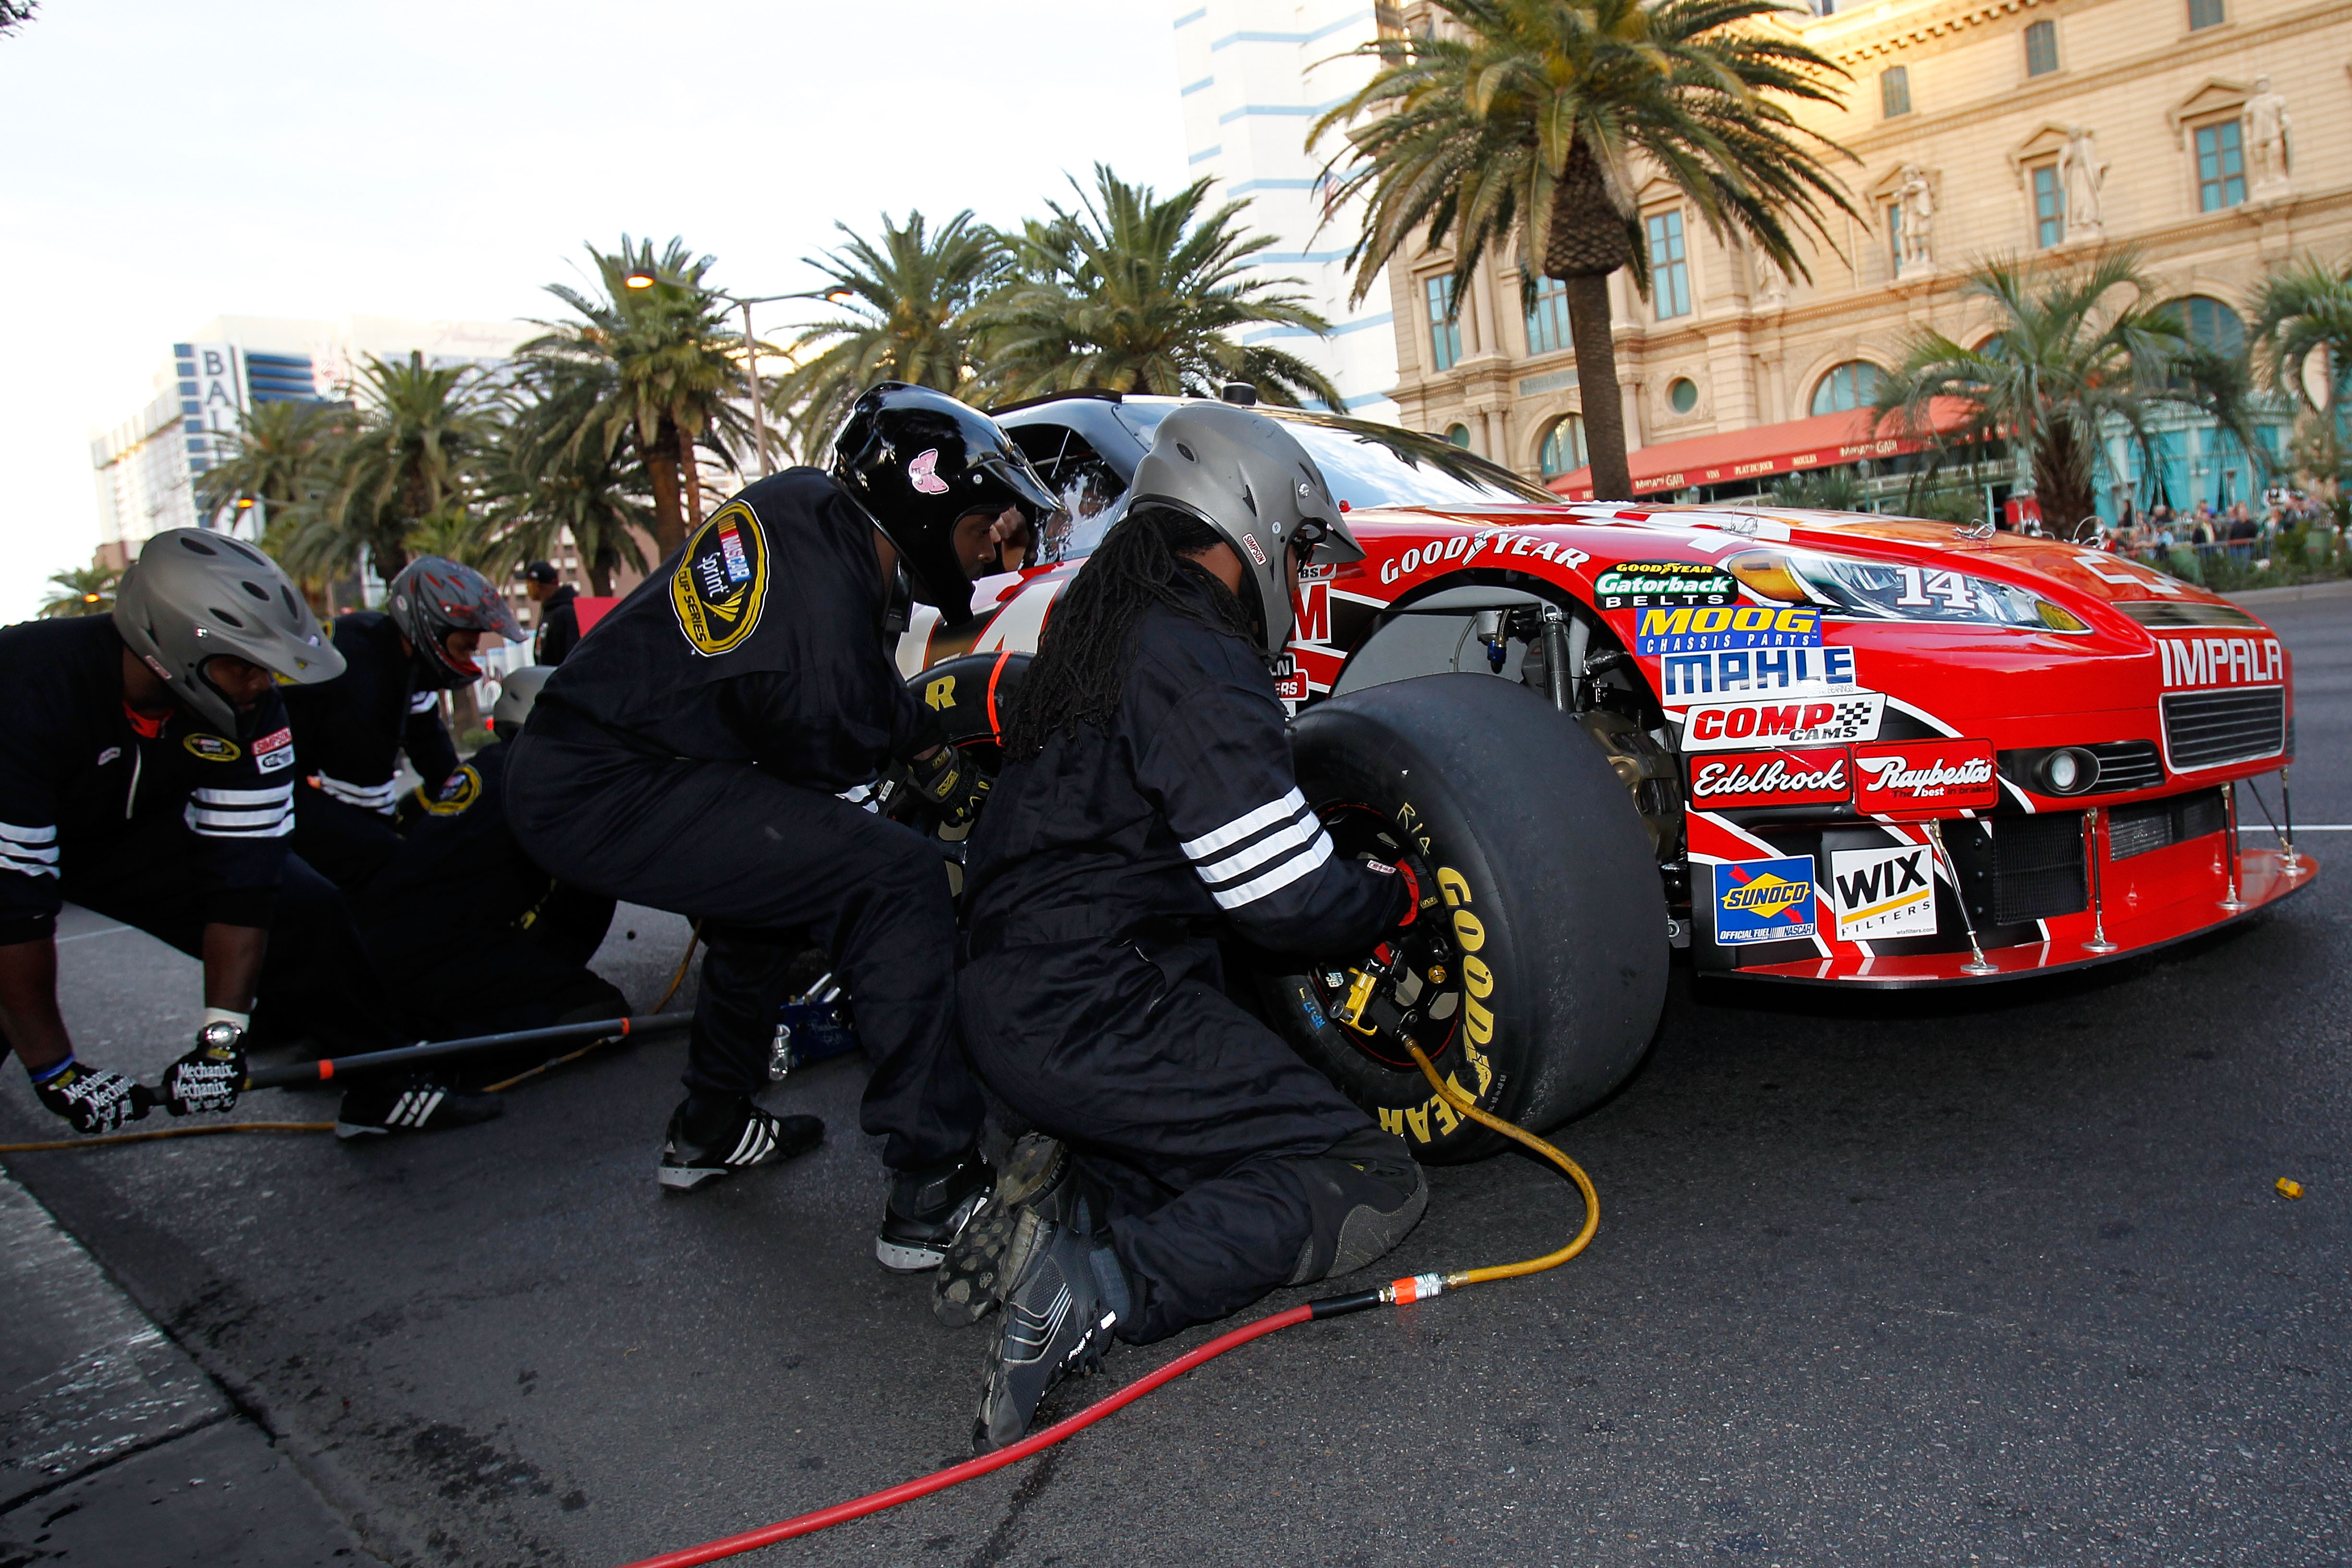 While Tony Stewart is enjoying his time in Las Vegas, he will be all business come February in Daytona.